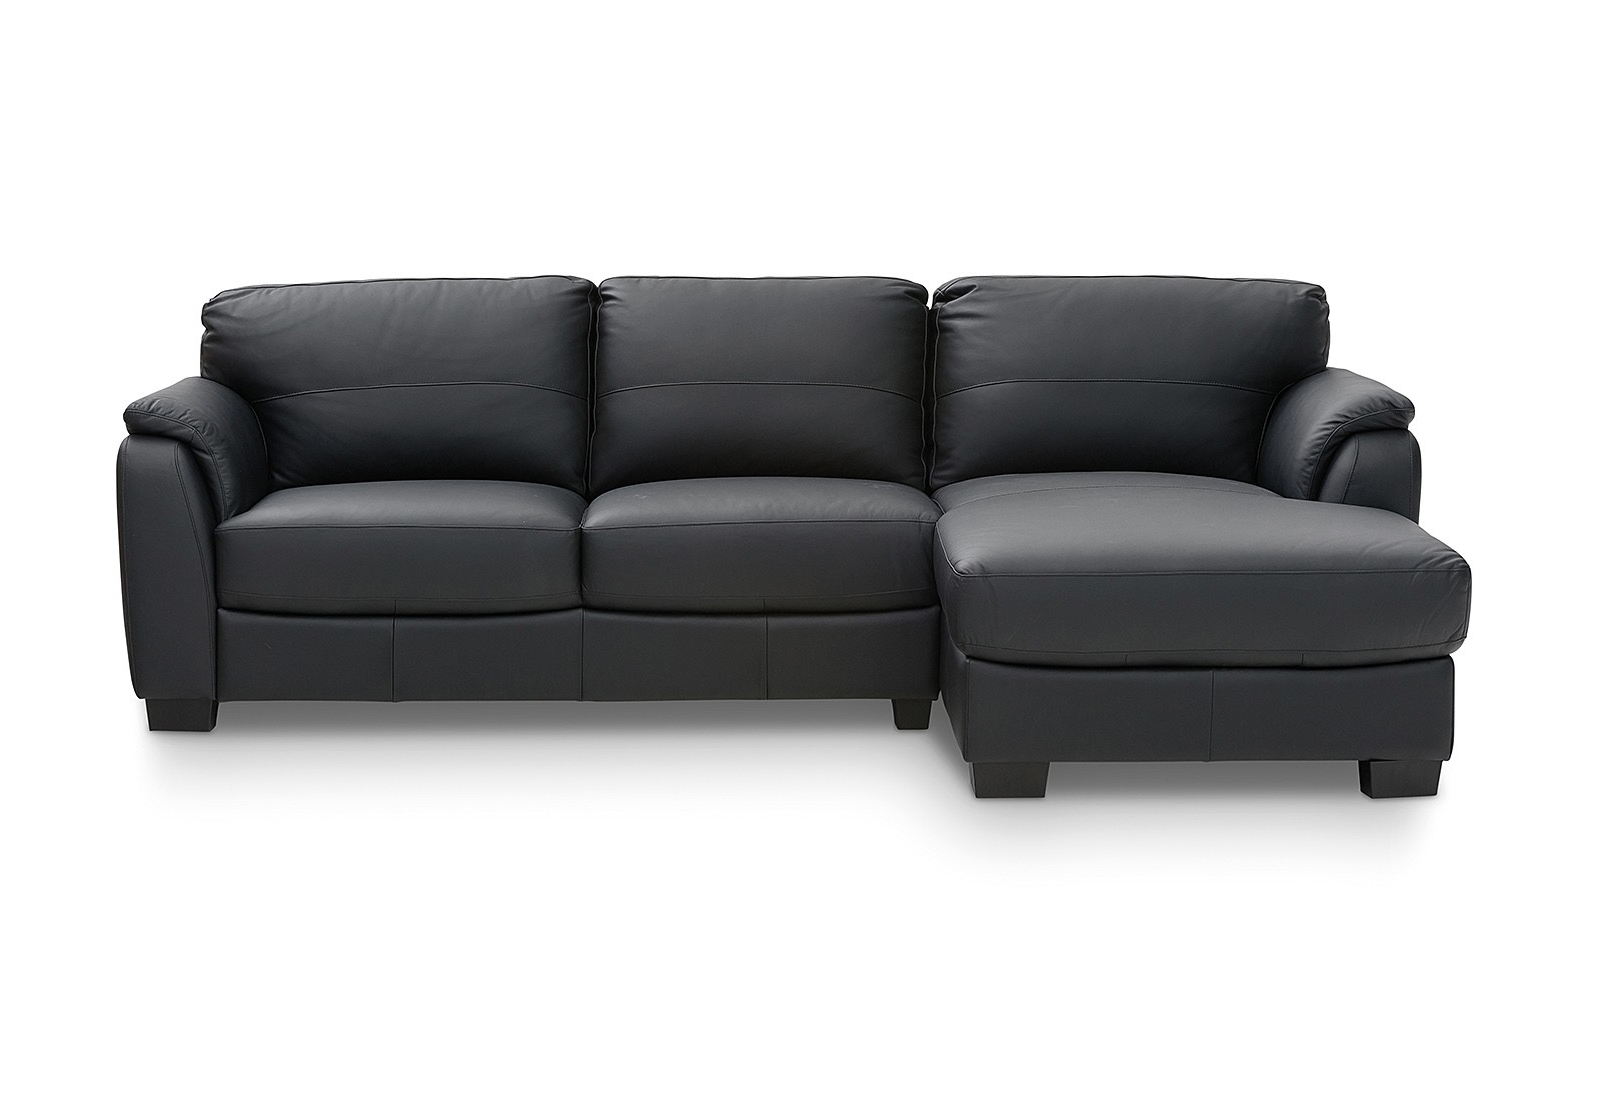 Amart Furniture Within Most Recent Marissa Sofa Chairs (View 7 of 20)